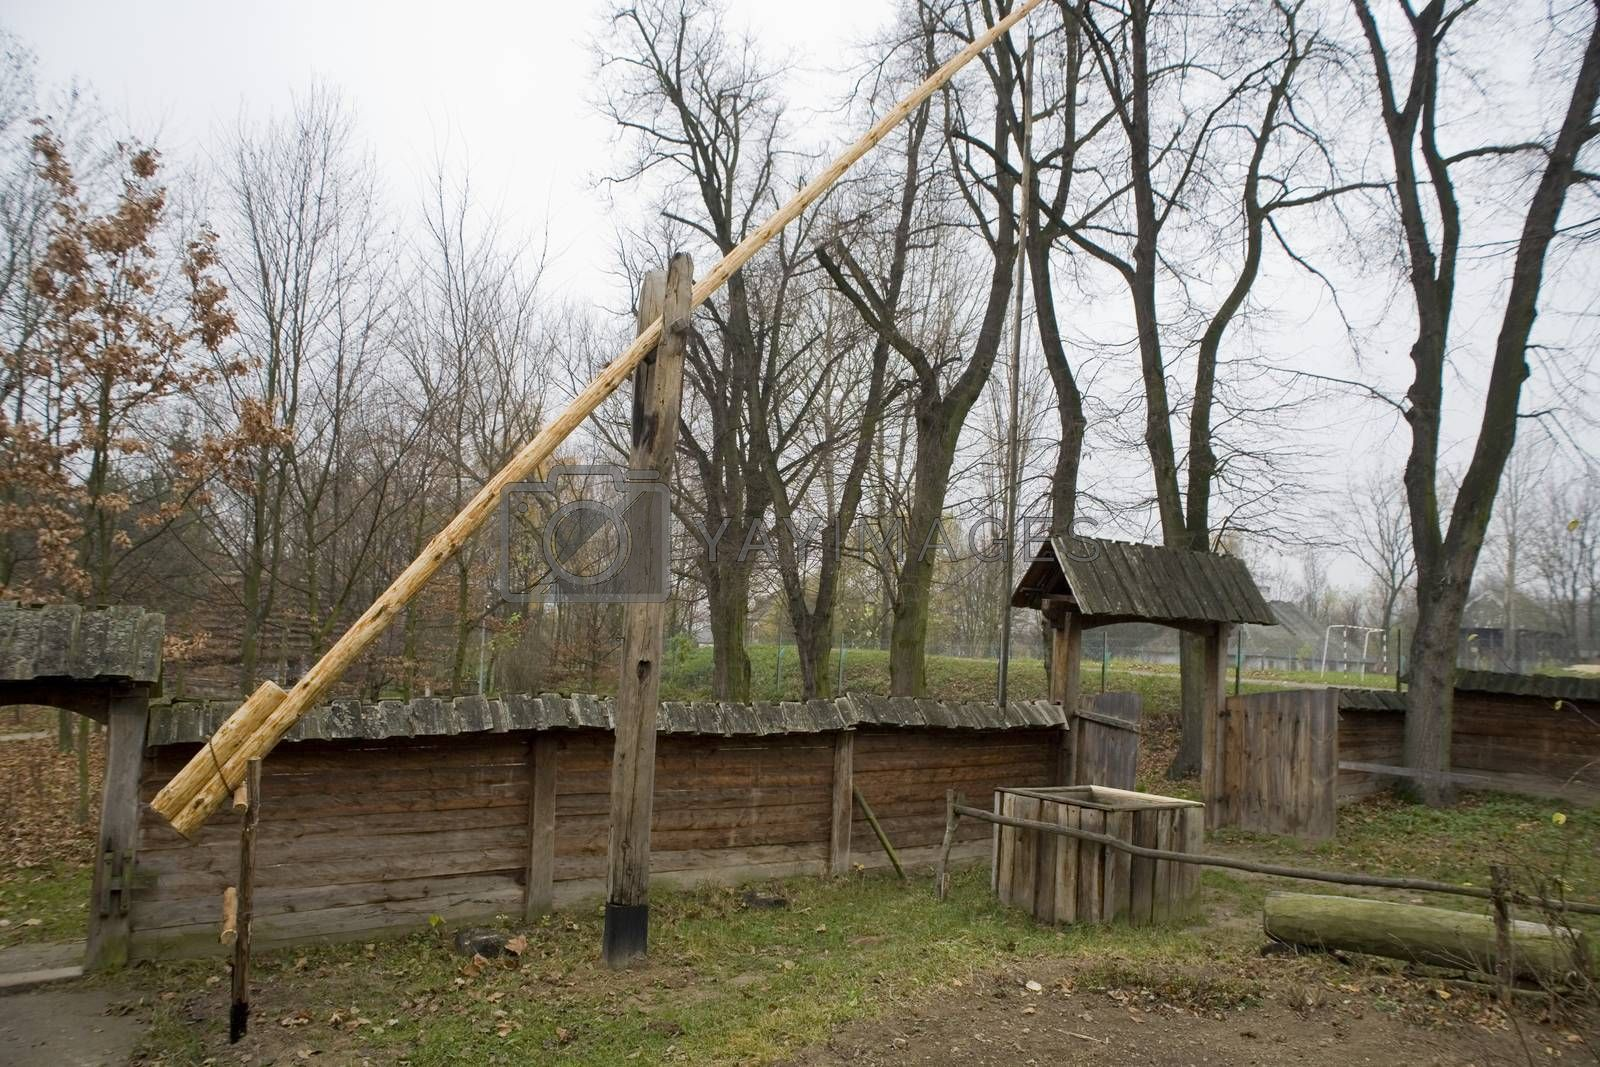 Royalty free image of  wooden well in an old village in Poland in Podlasie at the Muse by Lukrecja